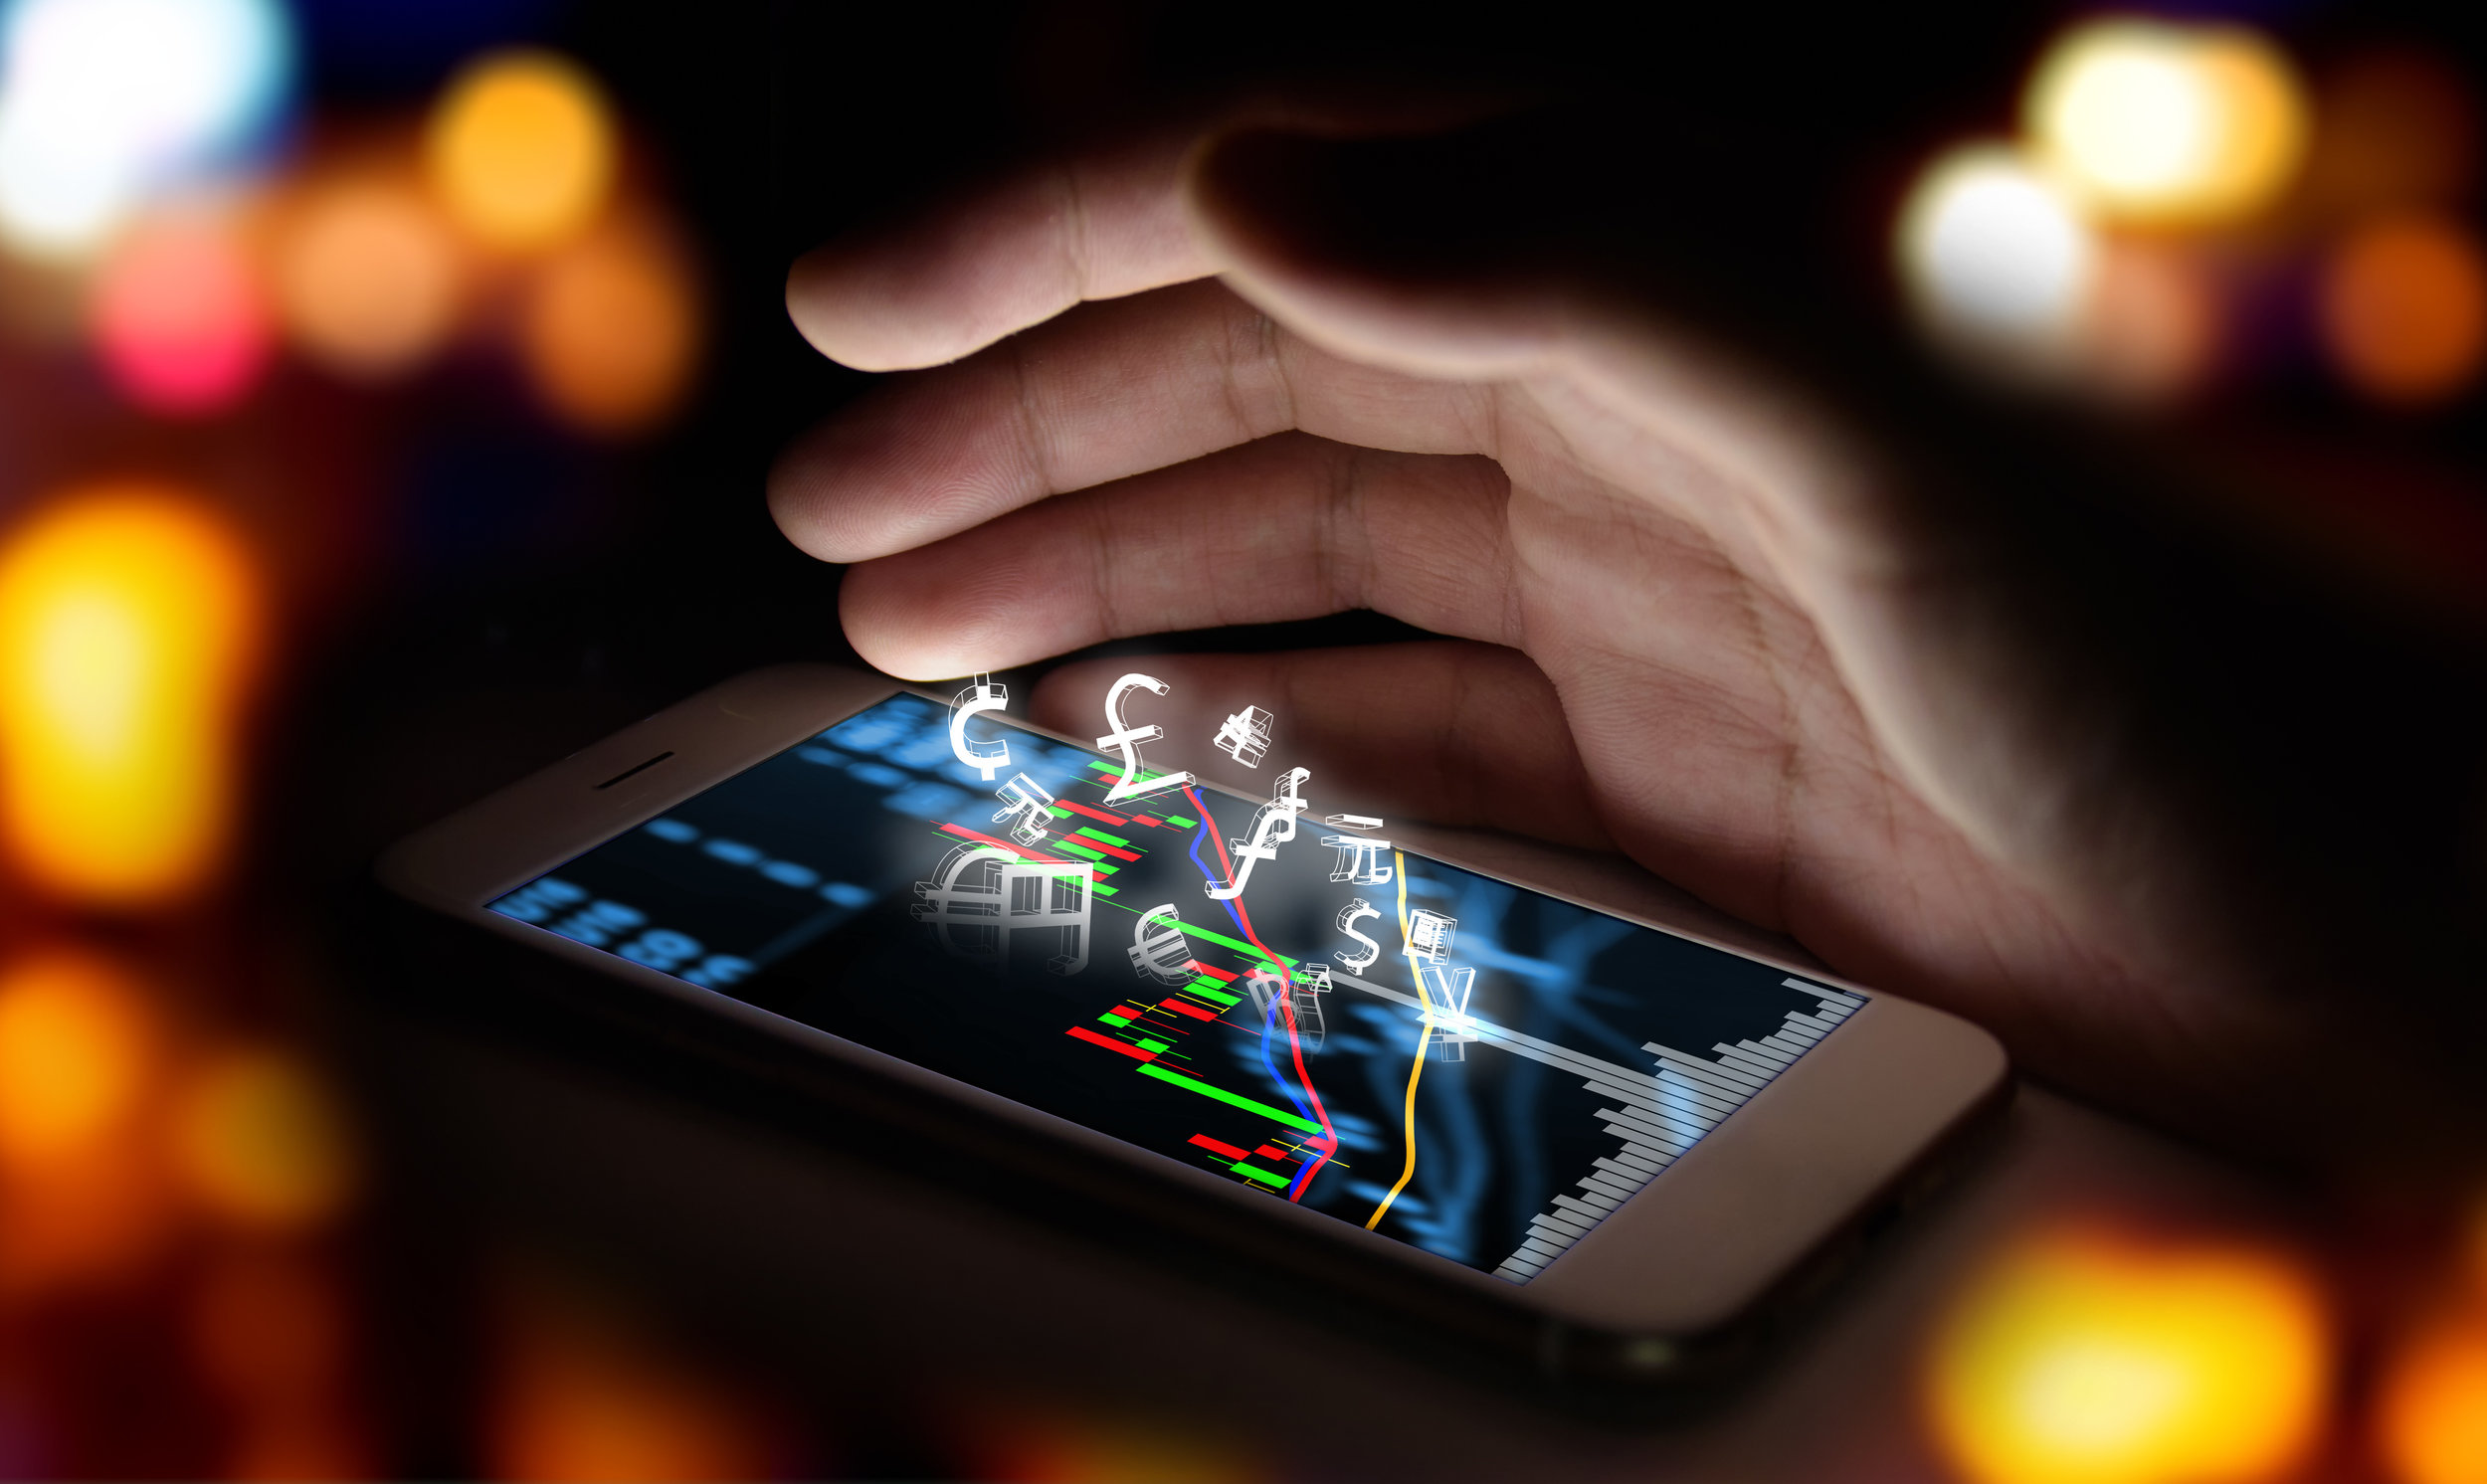 Open Banking - What does it mean for the future of personal finance?